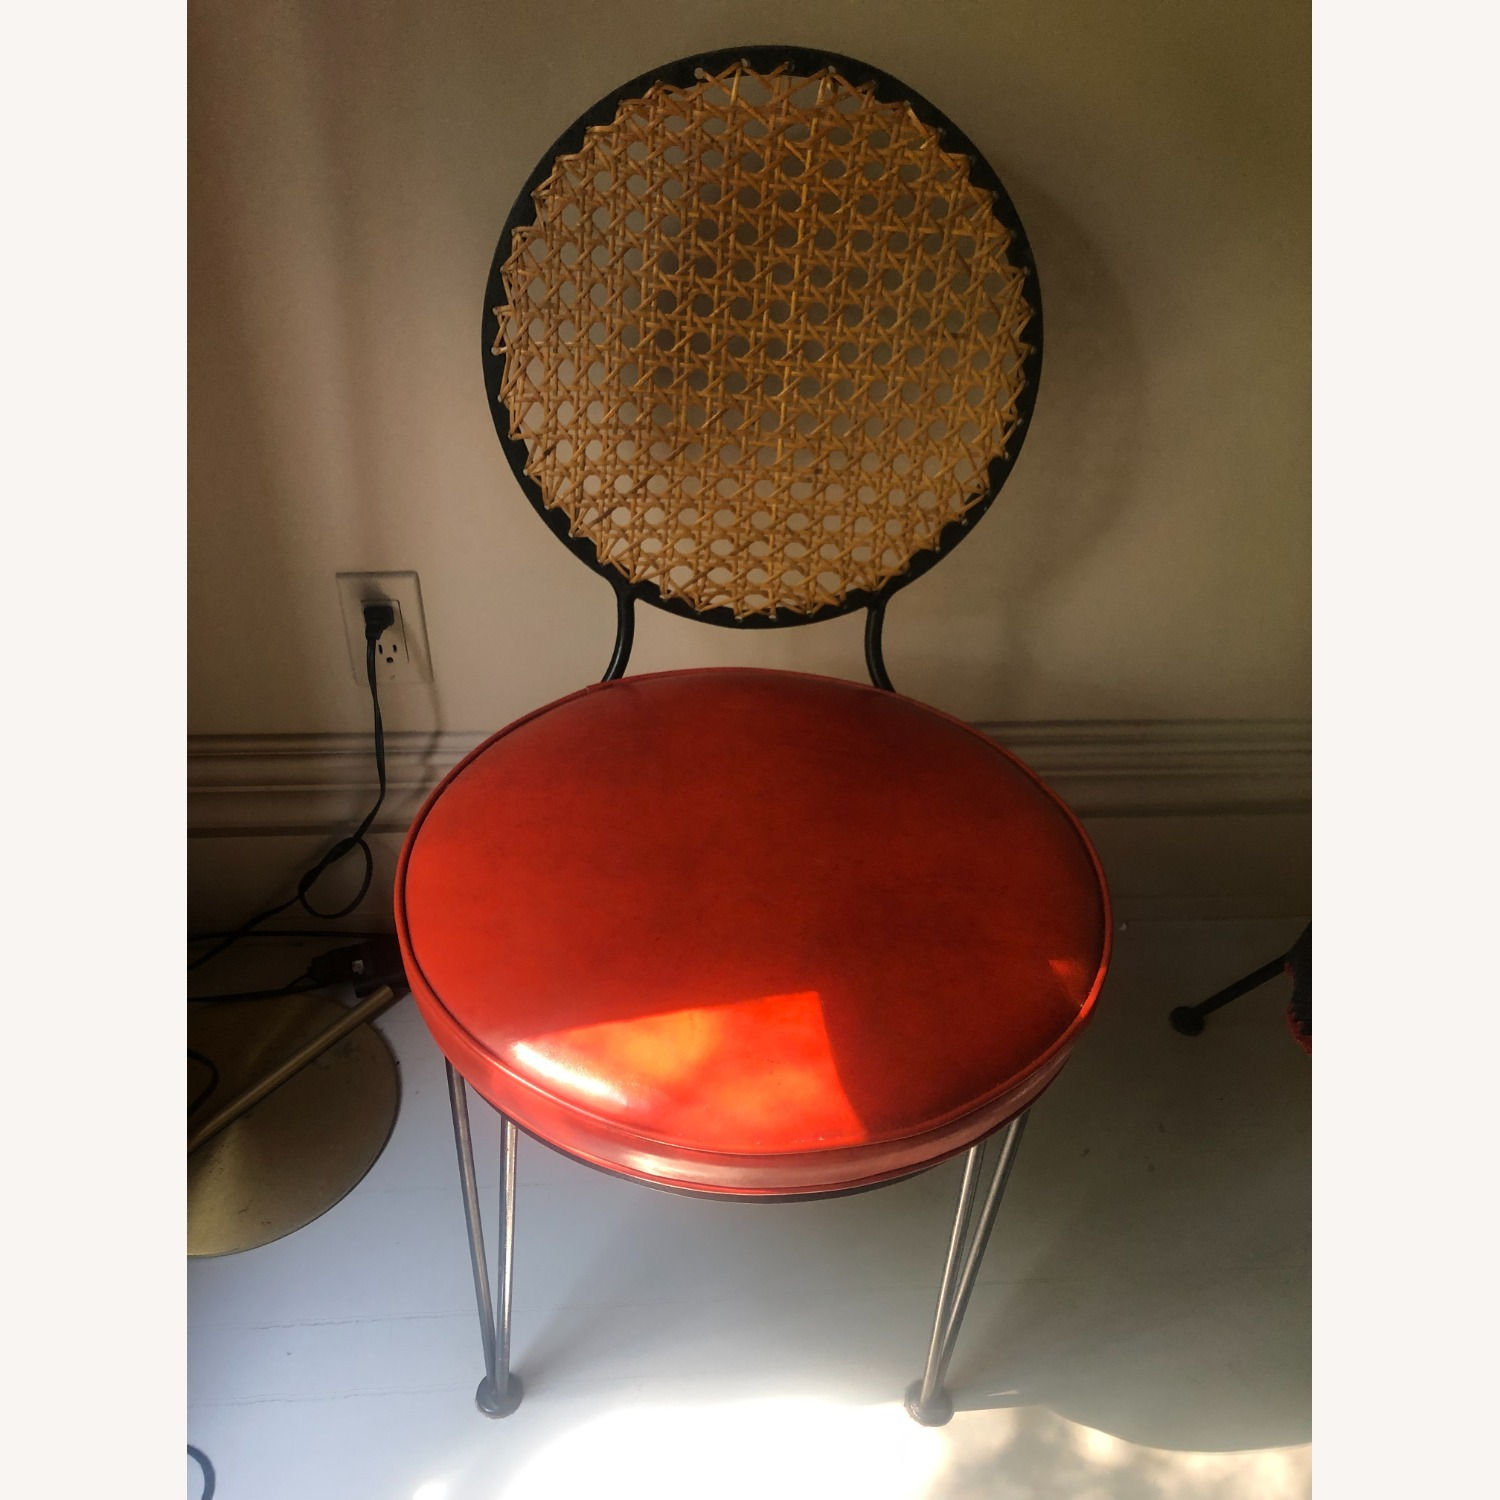 Vintage 1950s French Cane Chairs - image-5